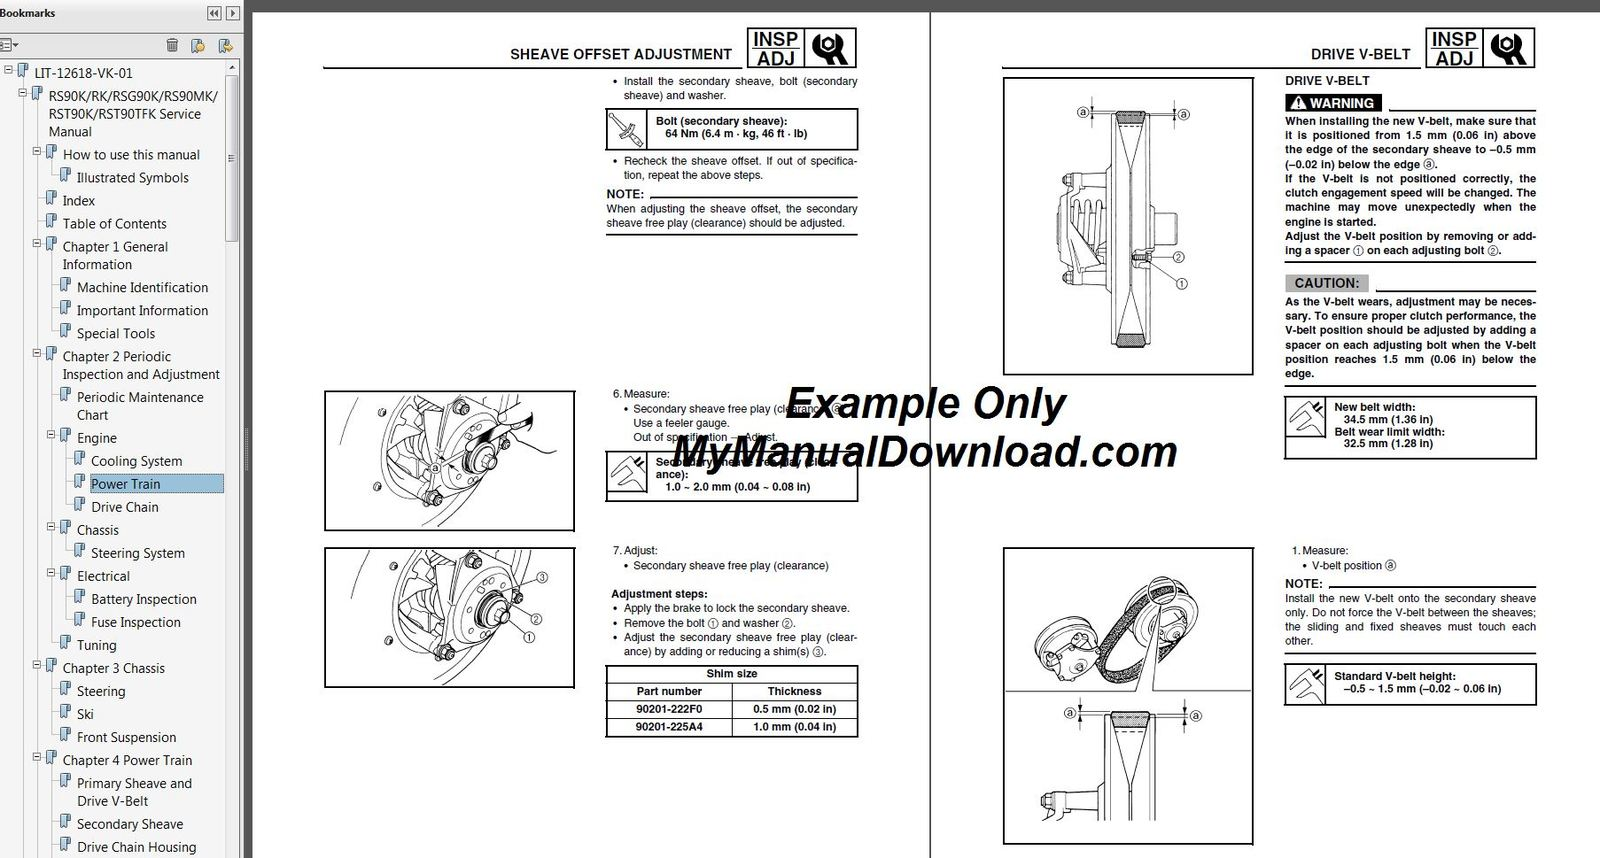 Yamaha Fx Sho Owners Manual Auto Electrical Wiring Diagram Headlight For 2005 Xj8 2010 2011 Nytro Snowmobile Service All